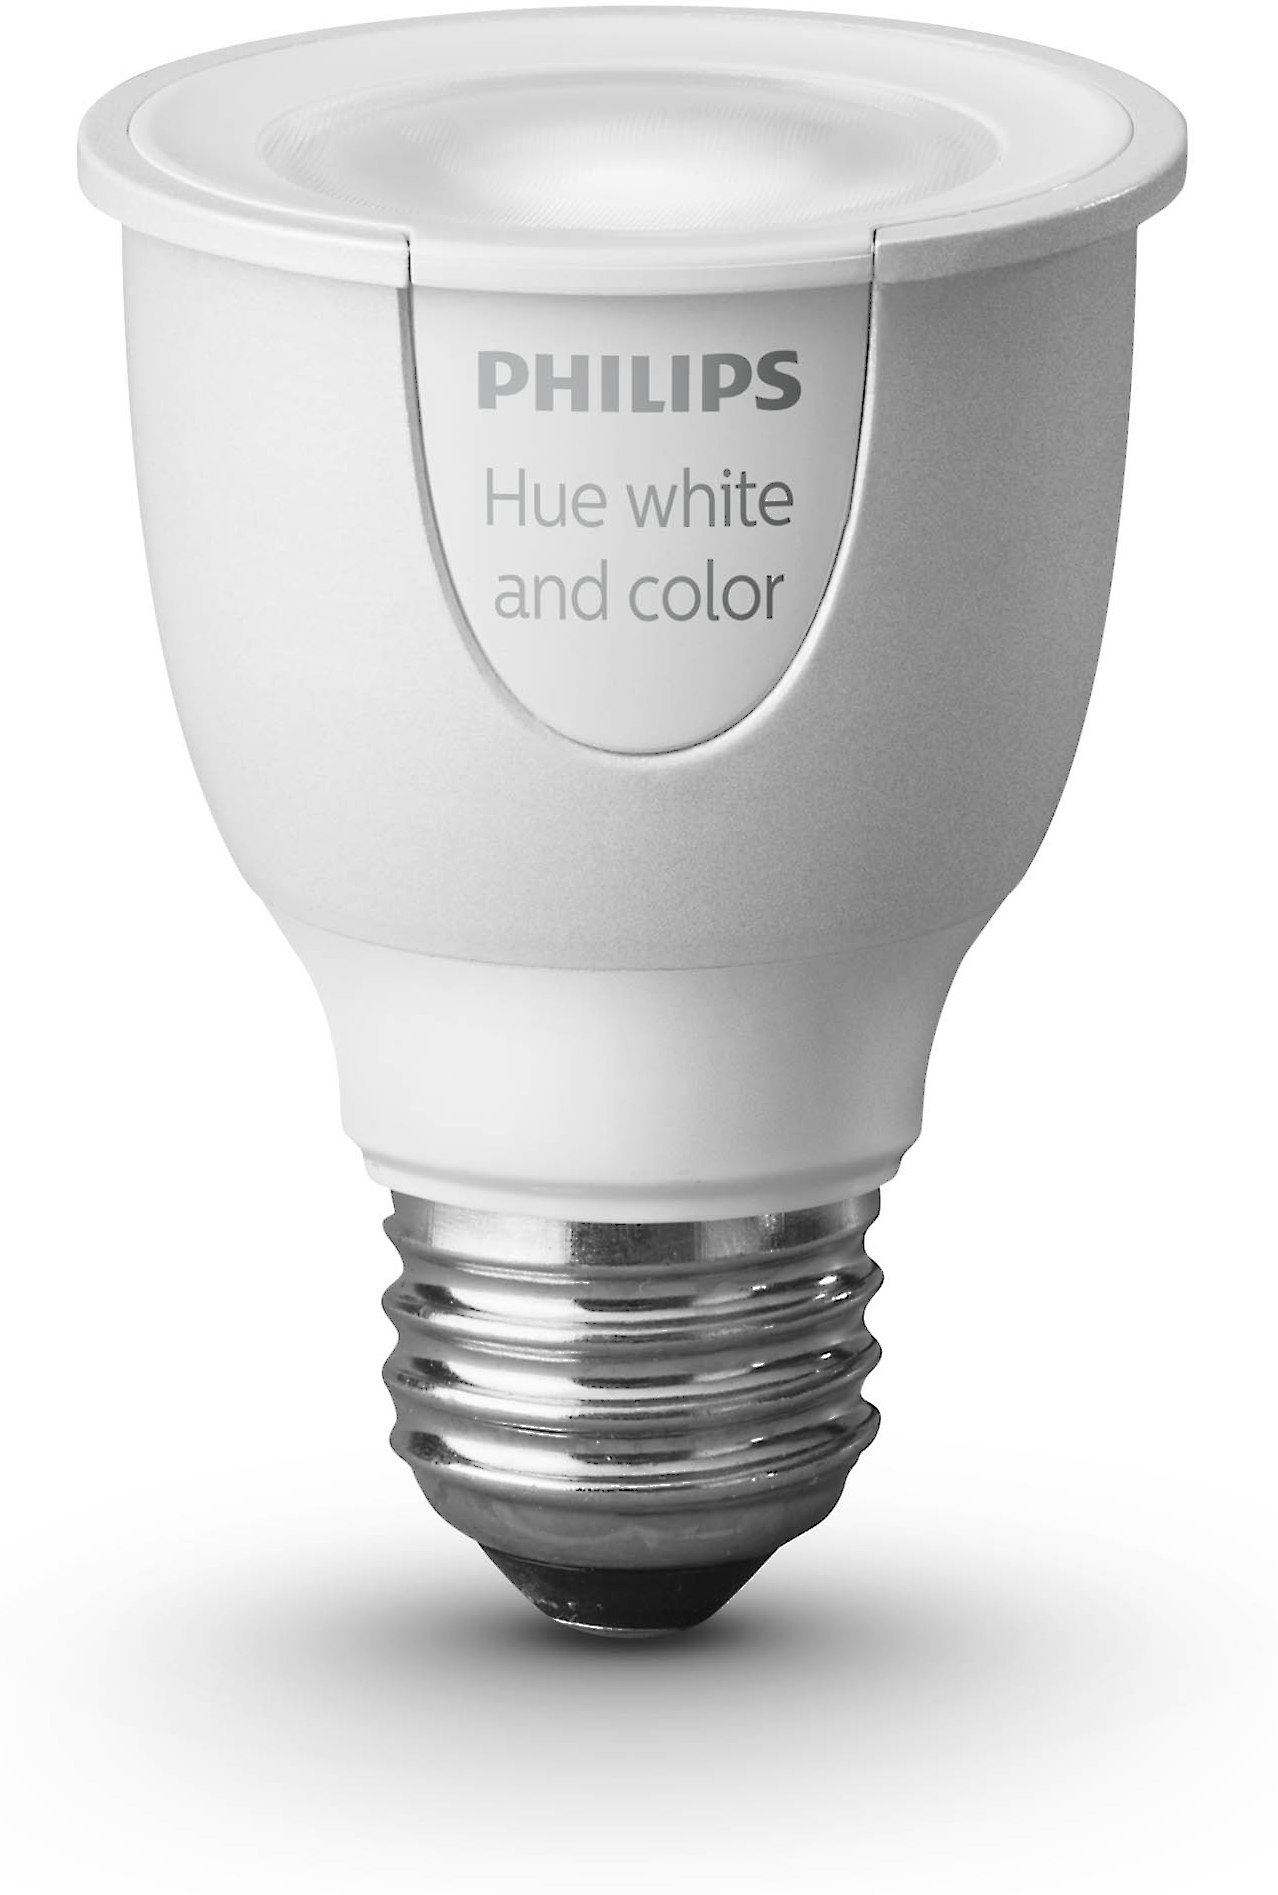 Phillips Light Bulbs Philips Hue Par16 White And Color Ambiance Bulb